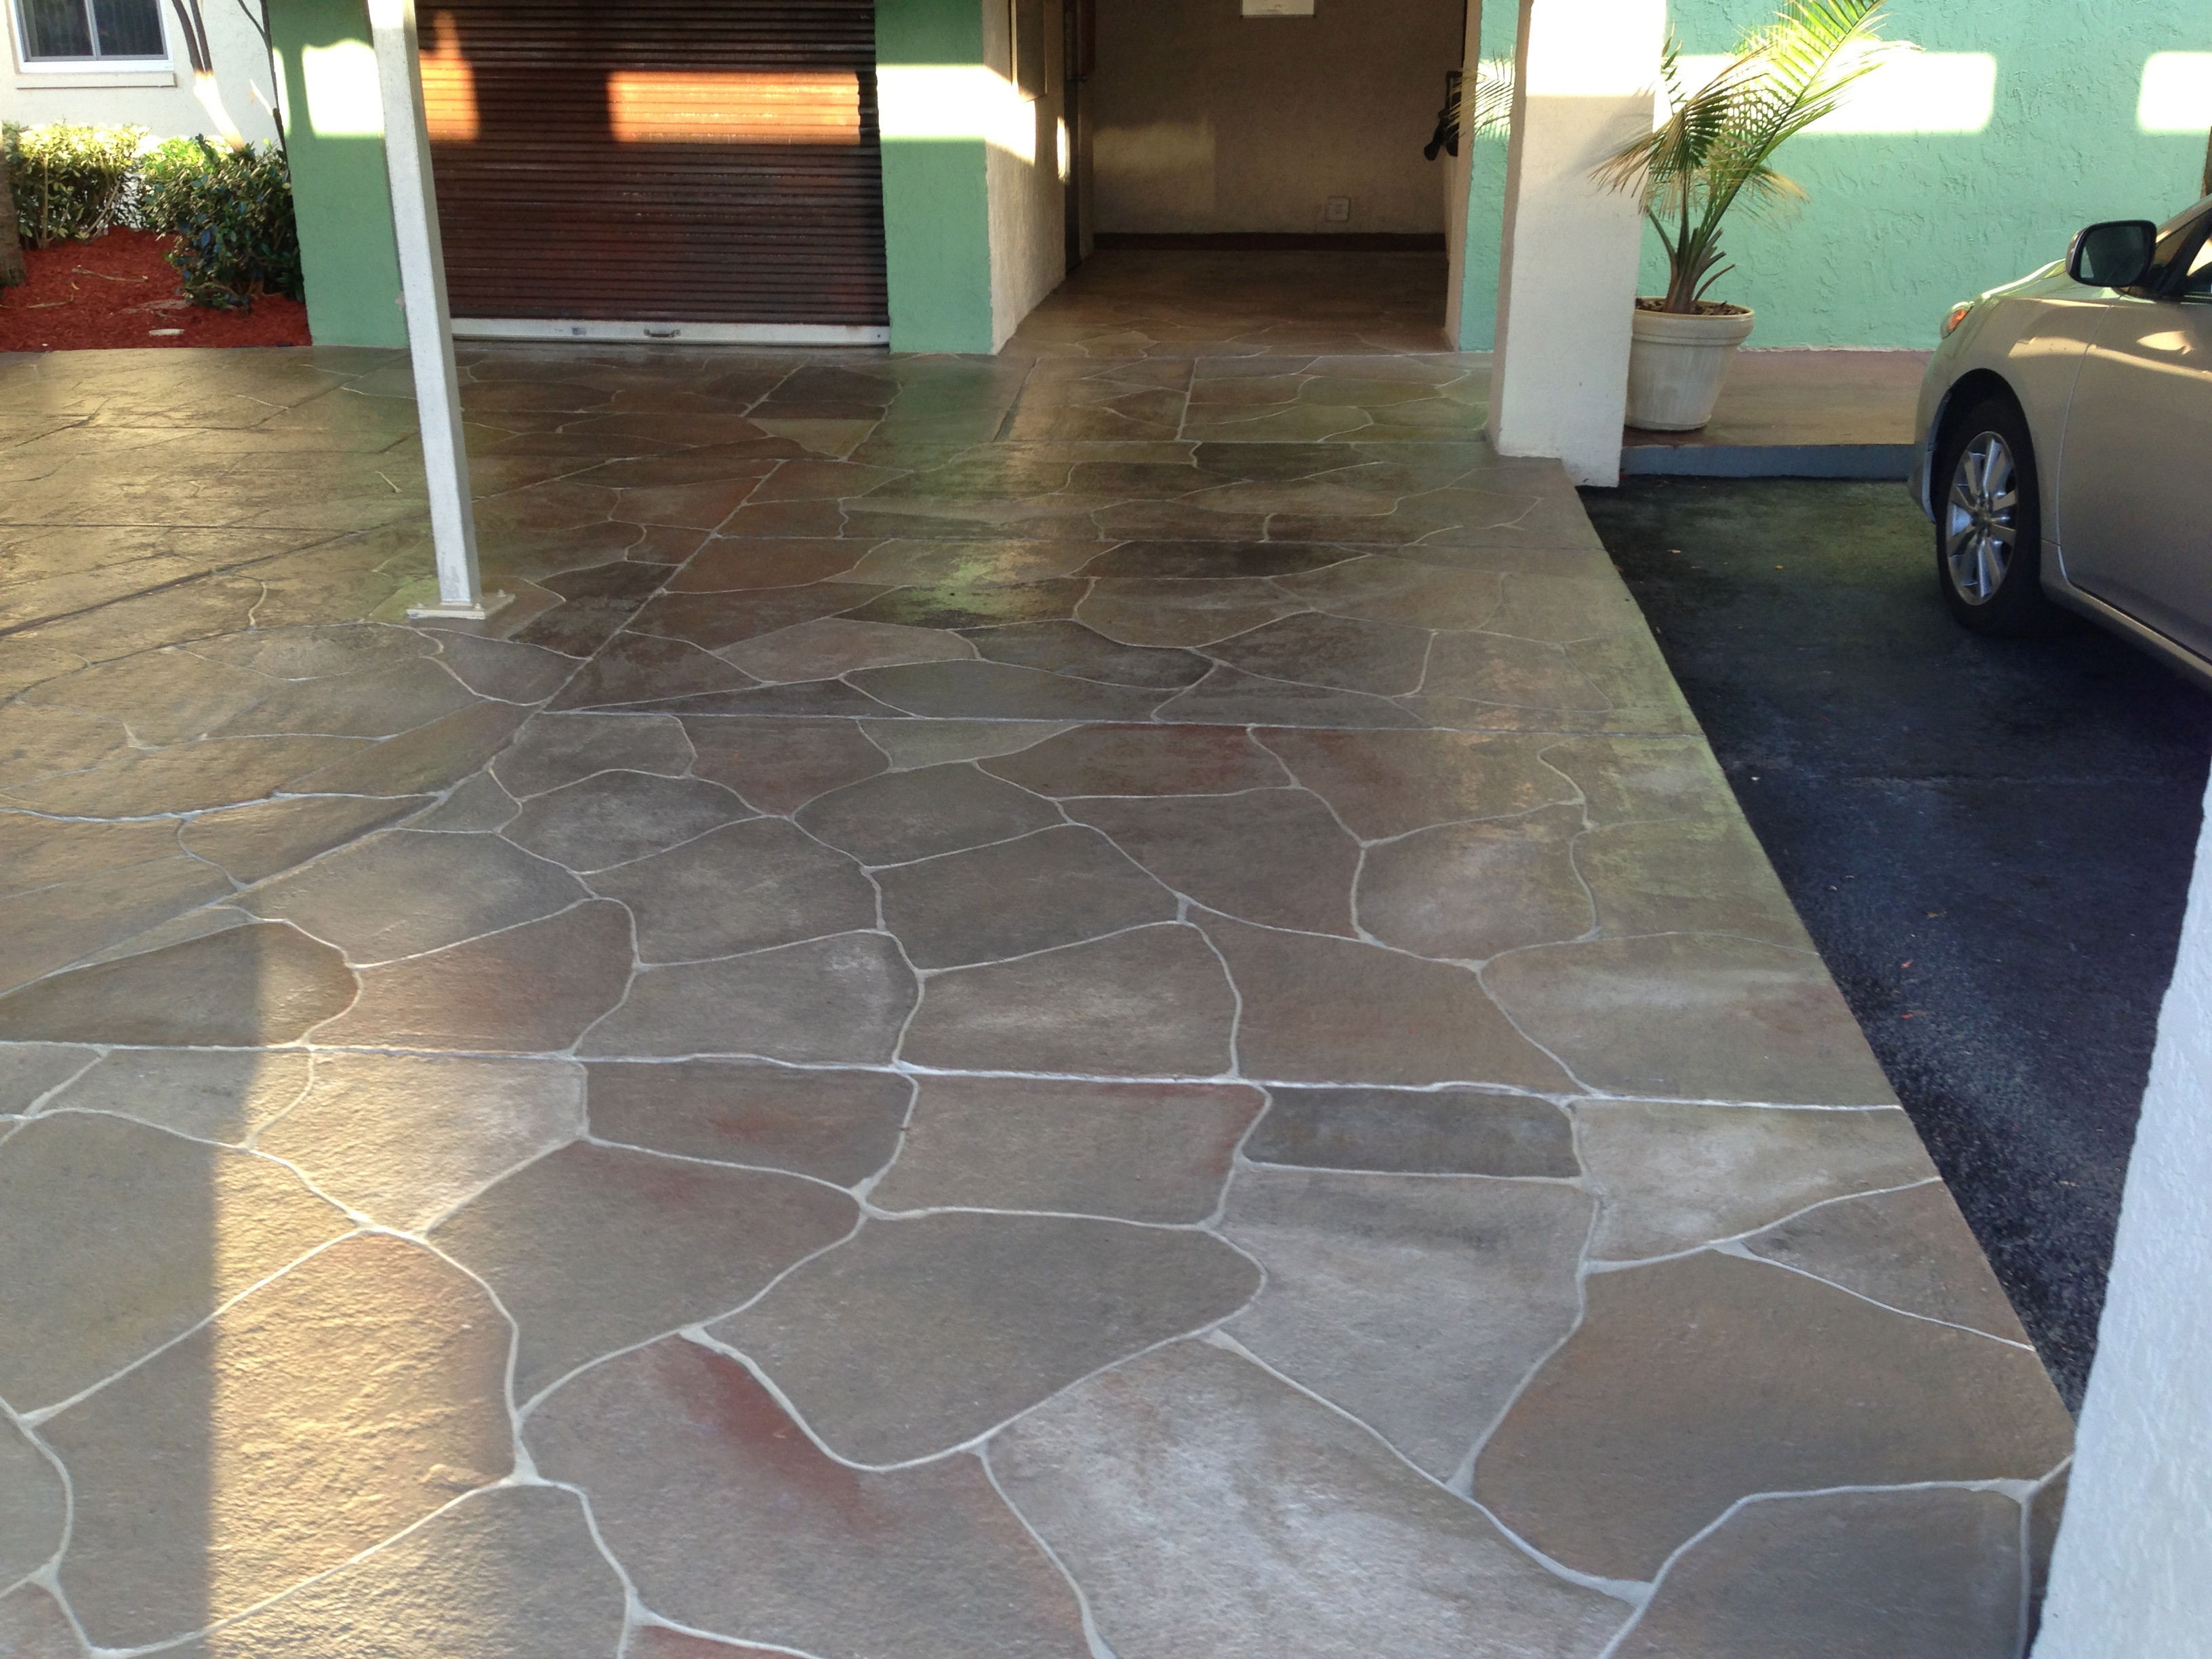 Best ideas about Painted Concrete Patio . Save or Pin Concrete Designs Florida Now.